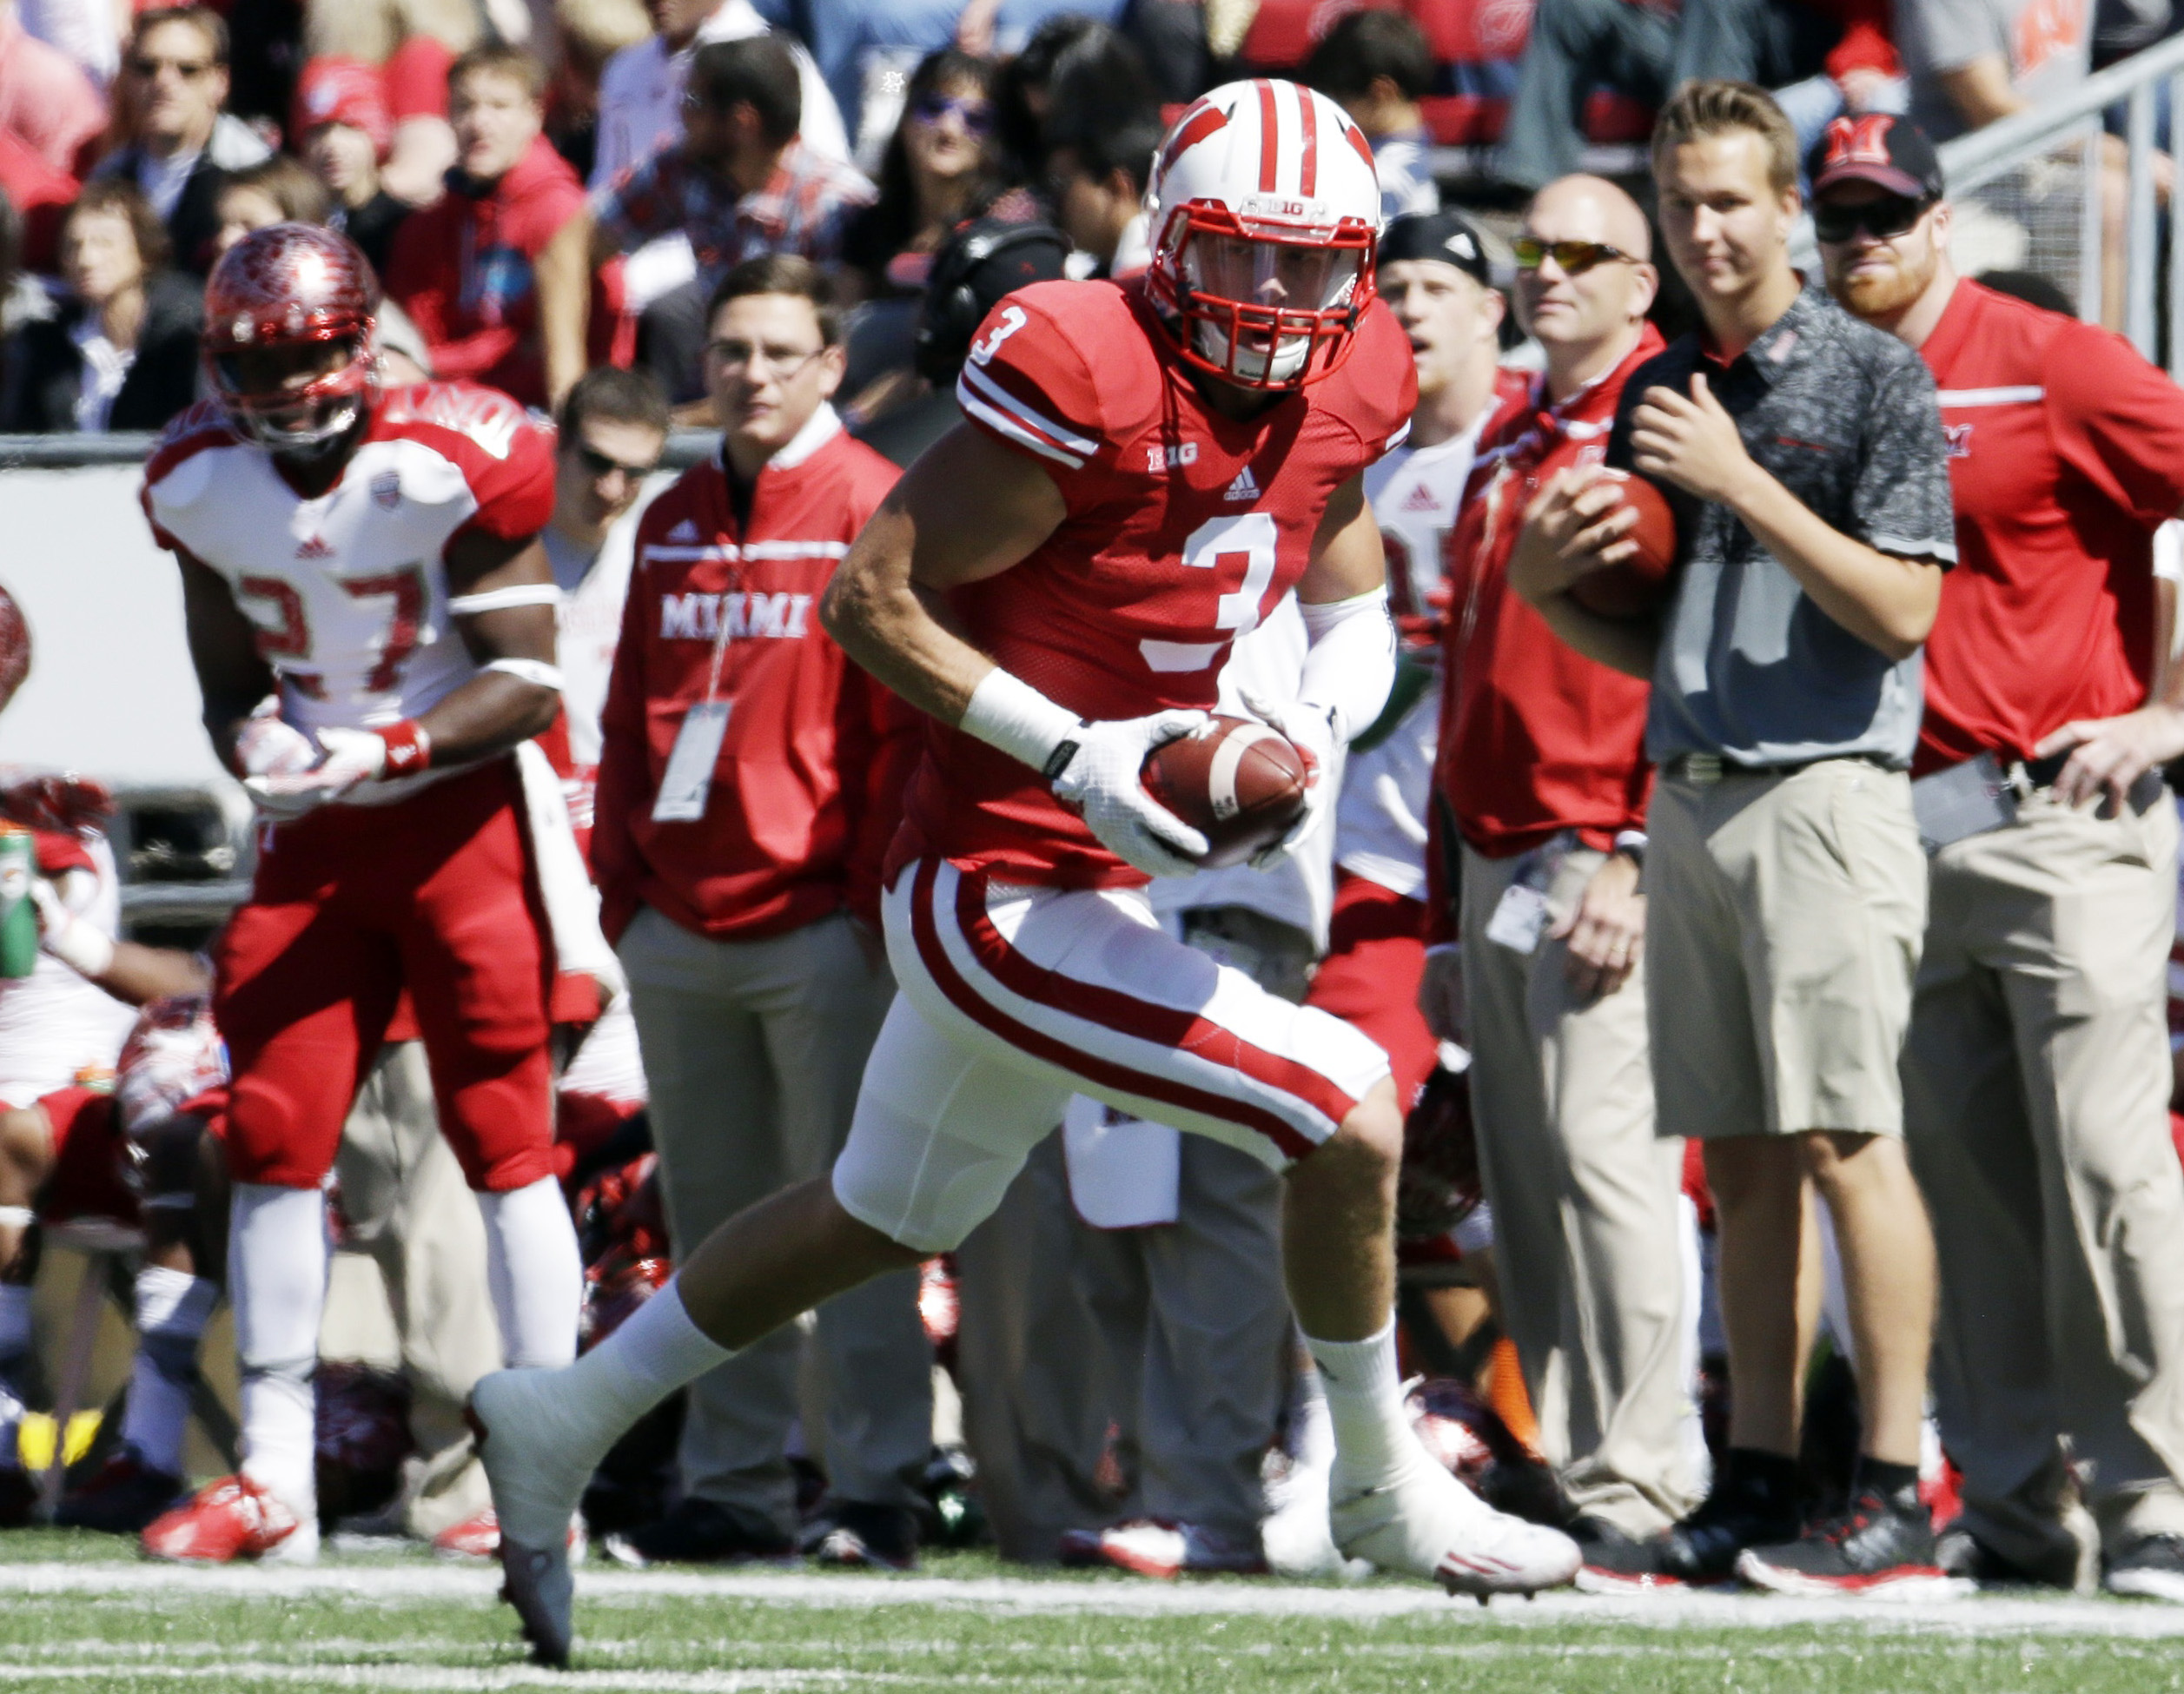 FILE - In this Saturday, Sept. 12, 2015, file photo, Wisconsin's Tanner McEvoy runs after intercepting a pass during the first half of an NCAA college football game against Miami of Ohio in Madison, Wis. McEvoy had an overwhelmingly positive debut last we